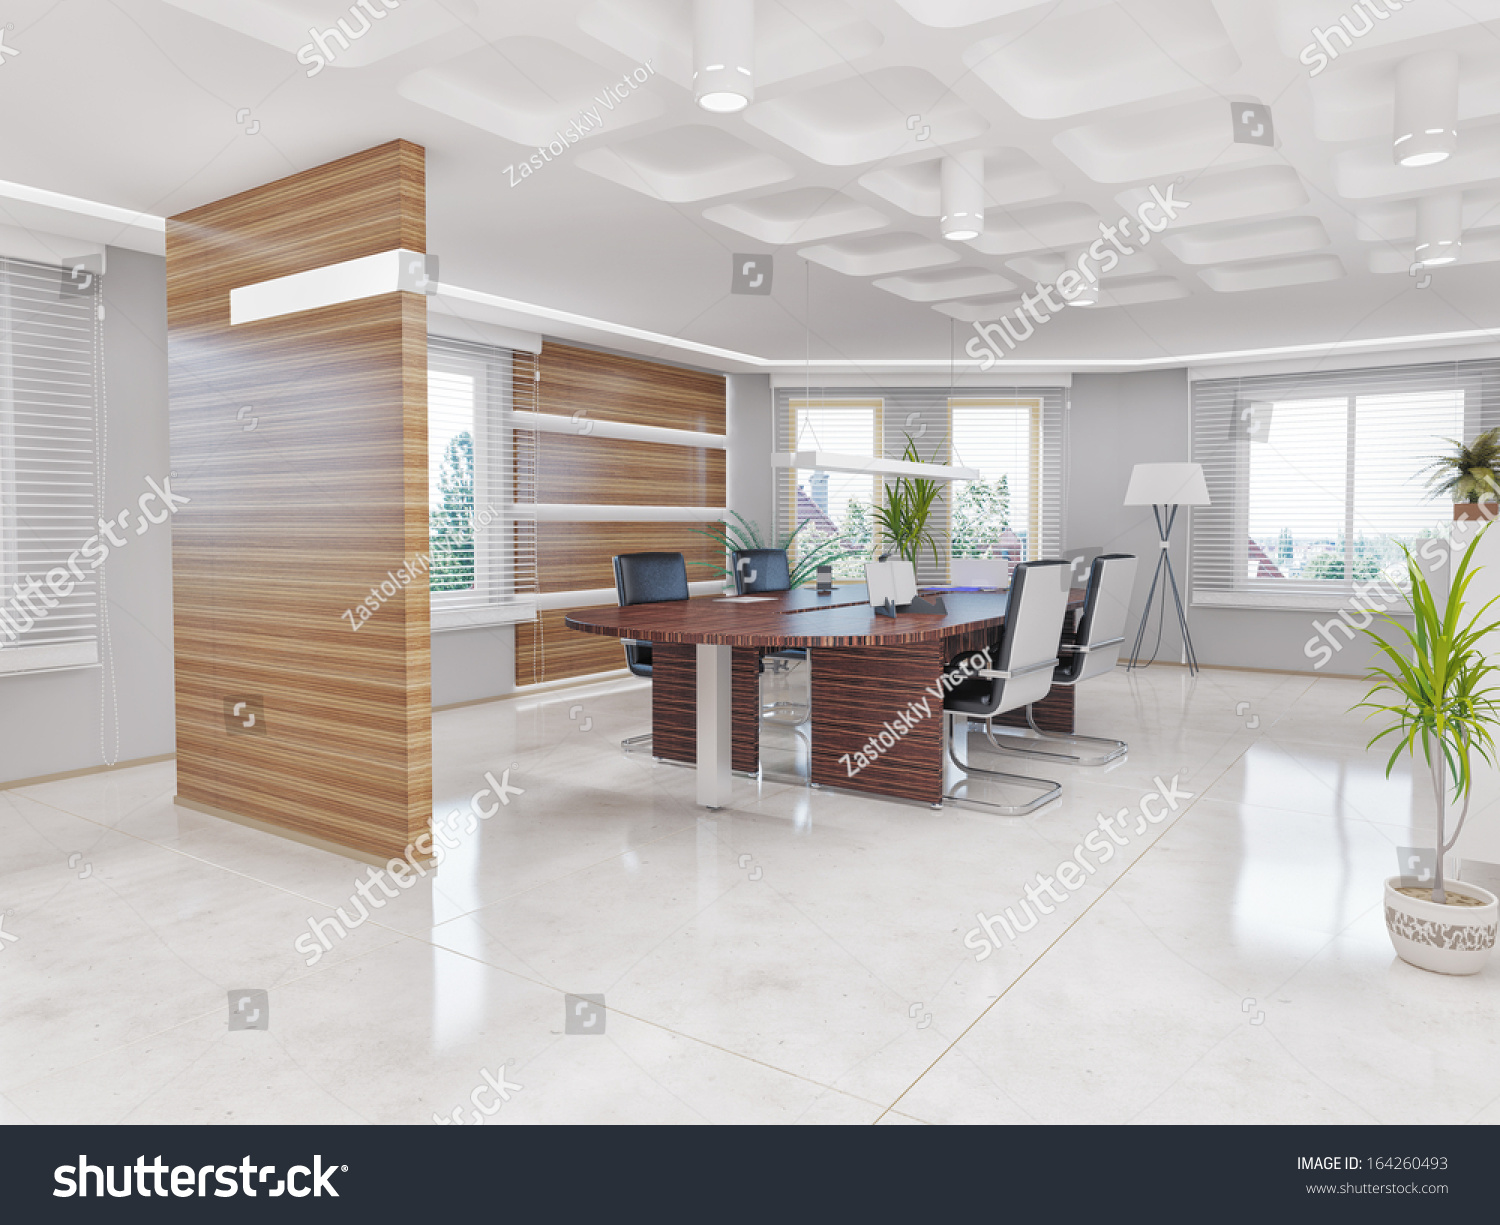 Modern office interior design concept stock illustration for New office design concept